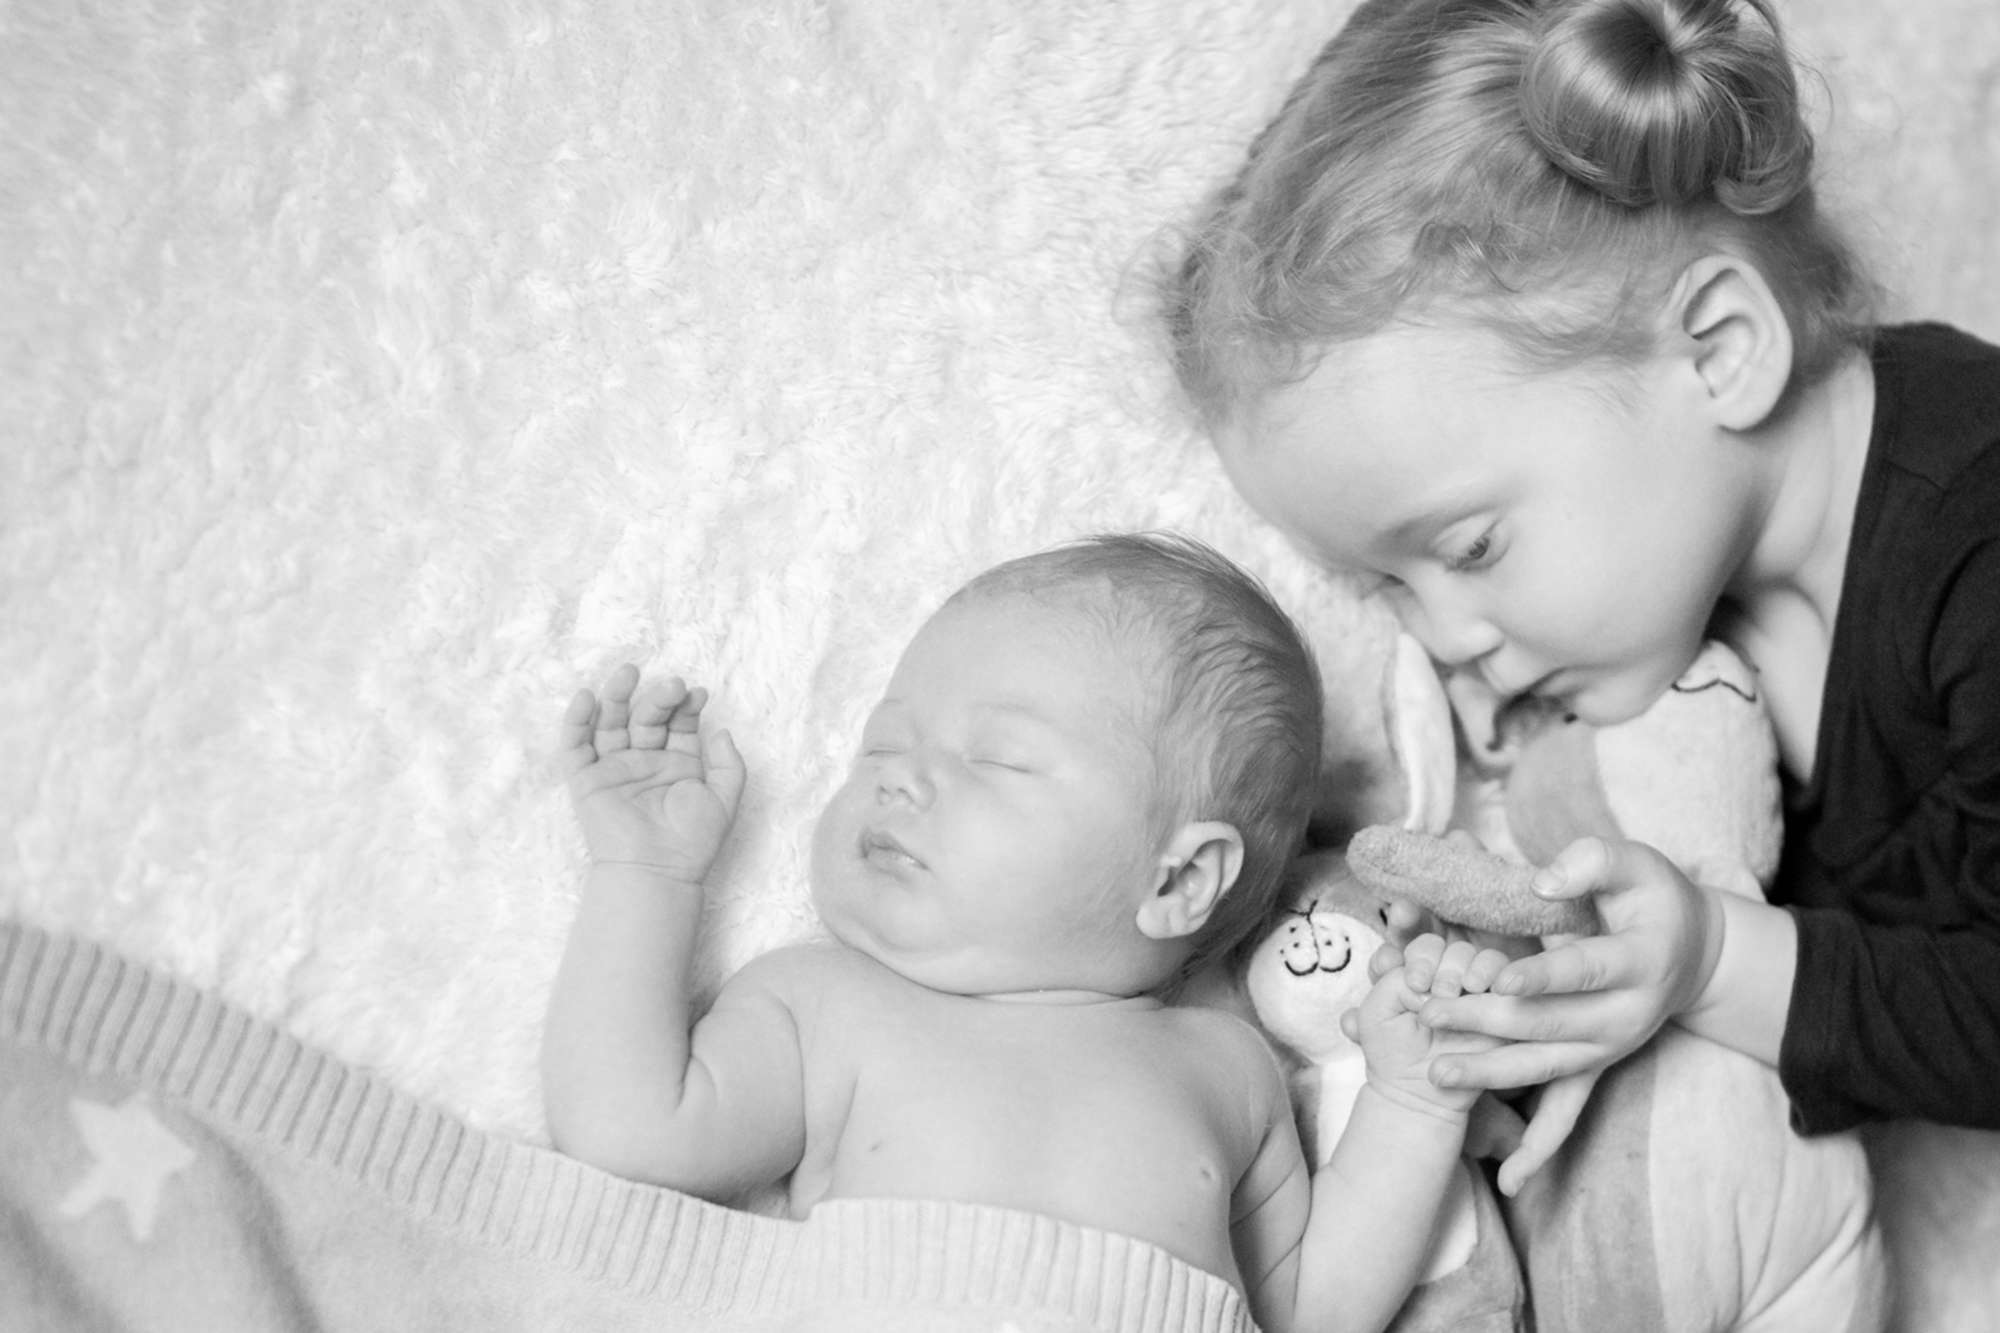 A black and white portrait photo of a newborn baby and toddler